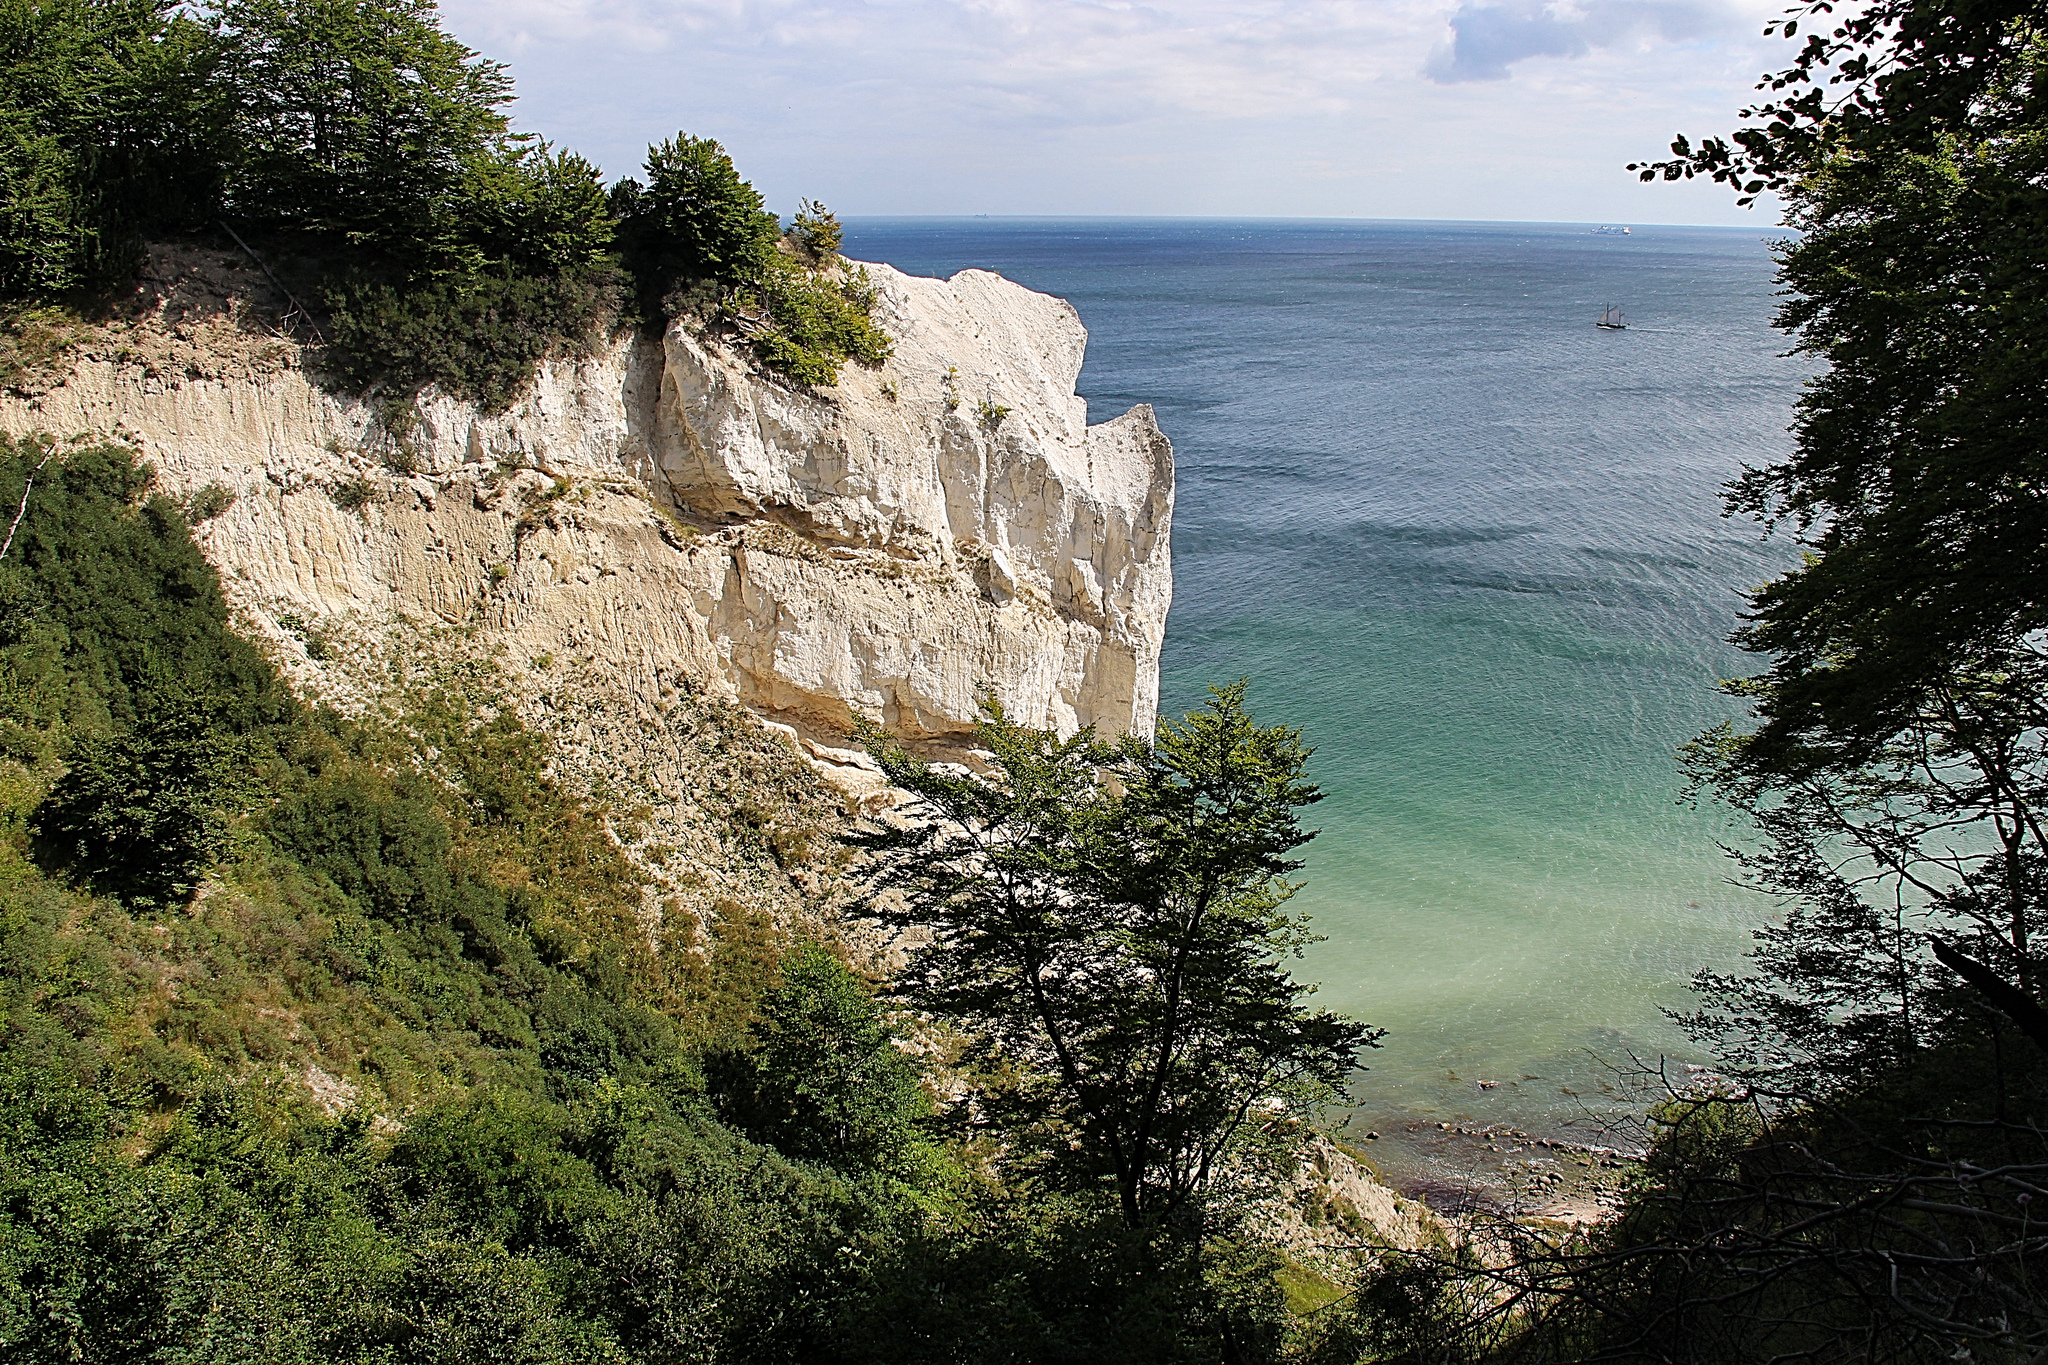 From the top of the cliffs there is a stunning view of the Baltic Sea